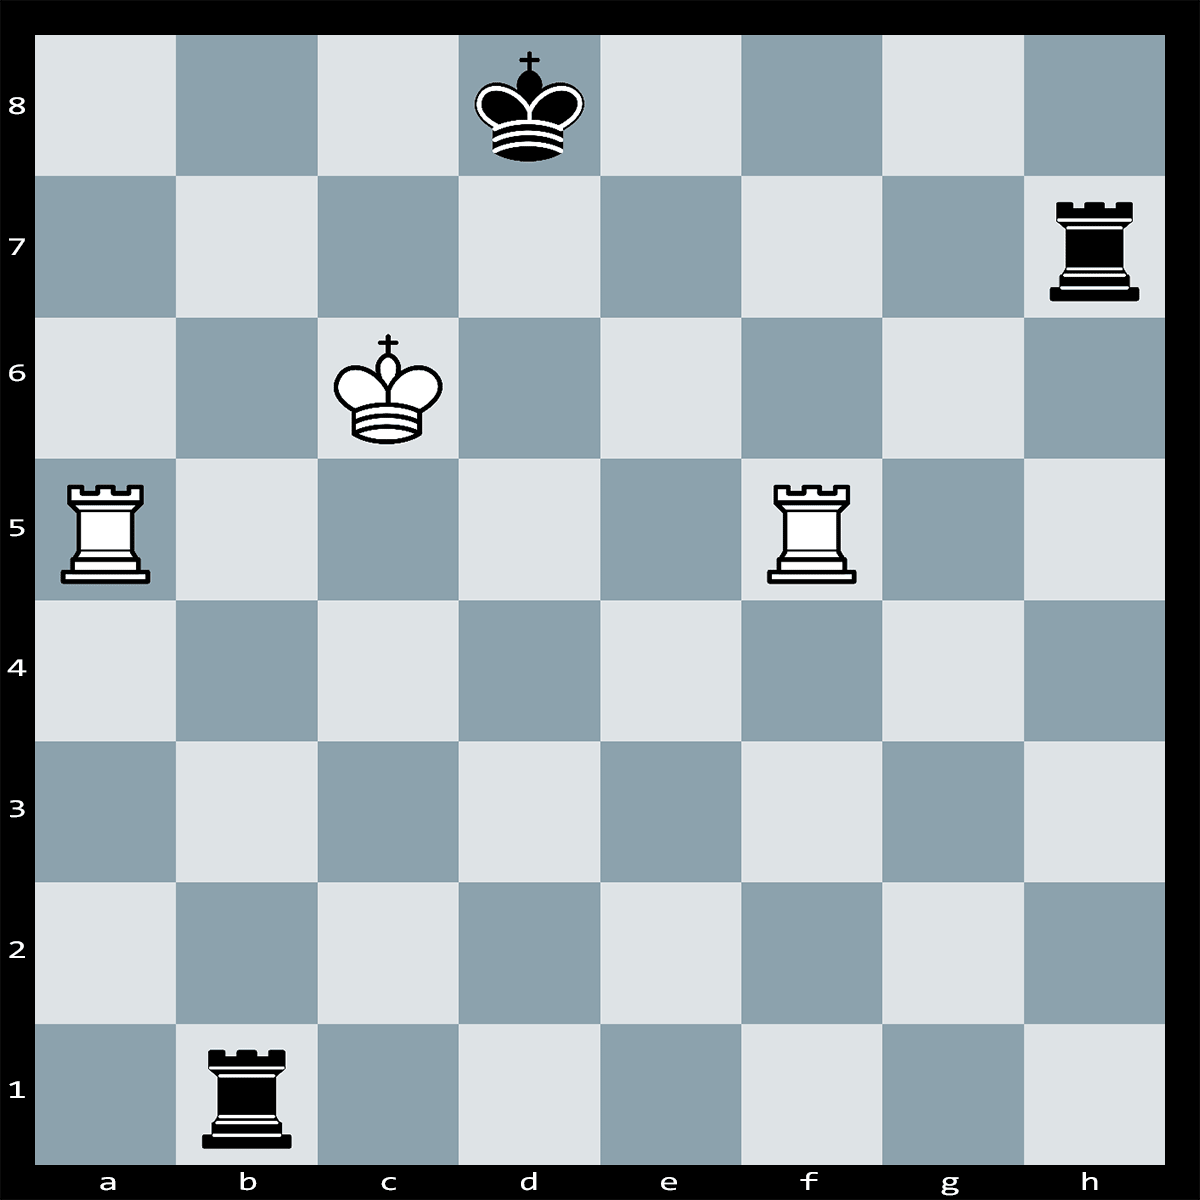 Chess Puzzle #298 | Material is level, It is White who has the move. What should he play?